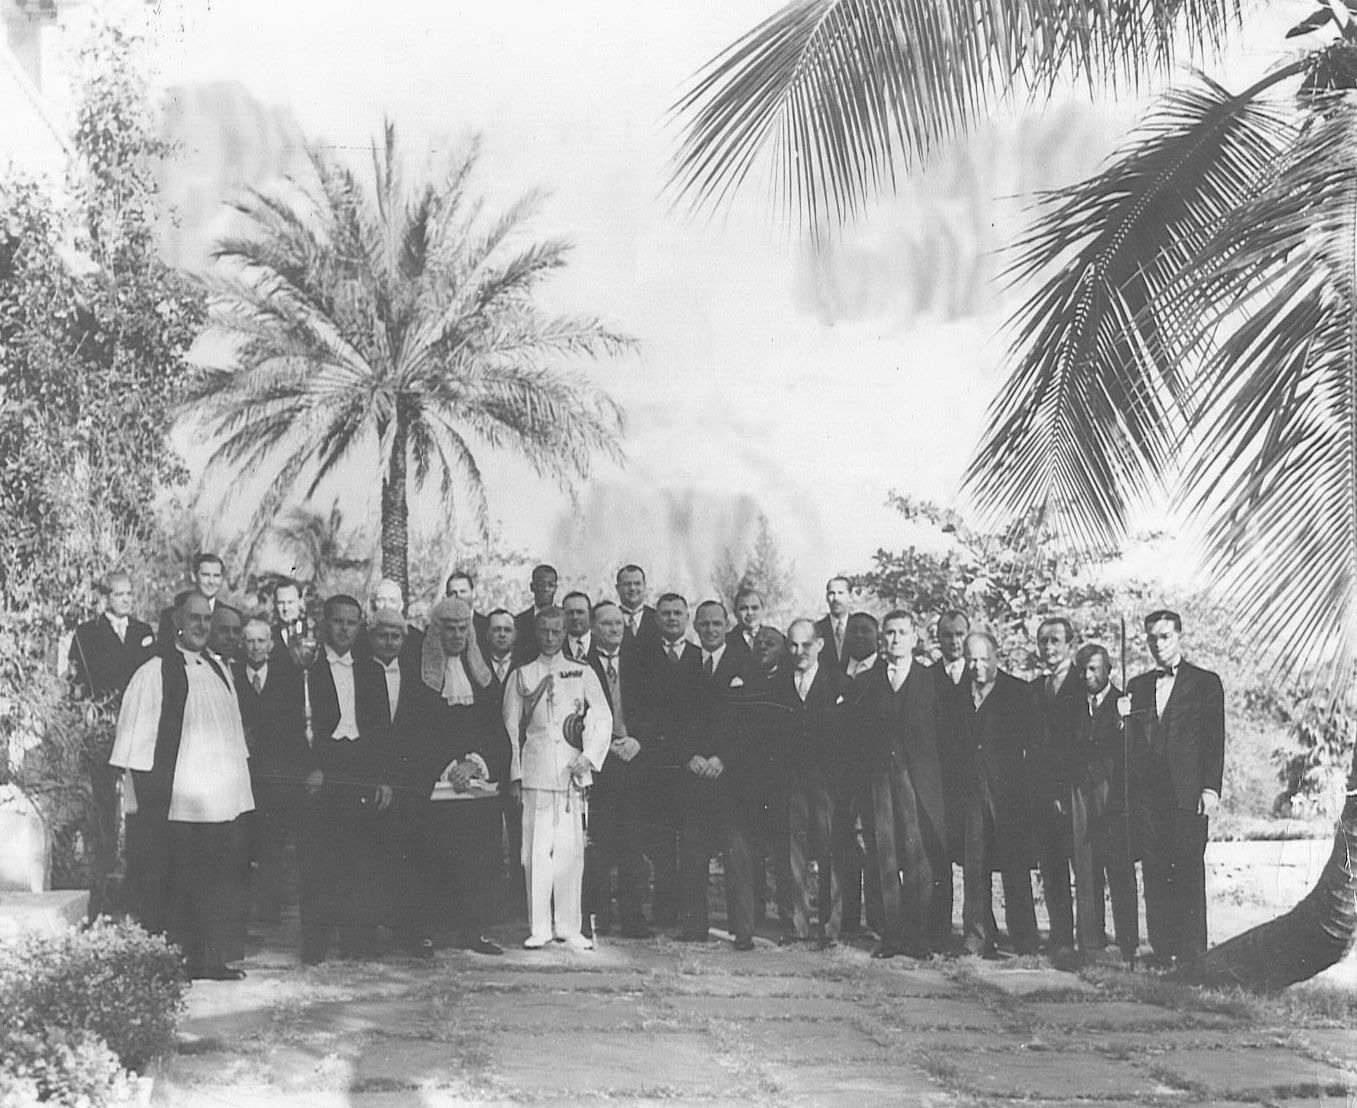 The Duke of Windsor with members of the Bahamas House of Assembly